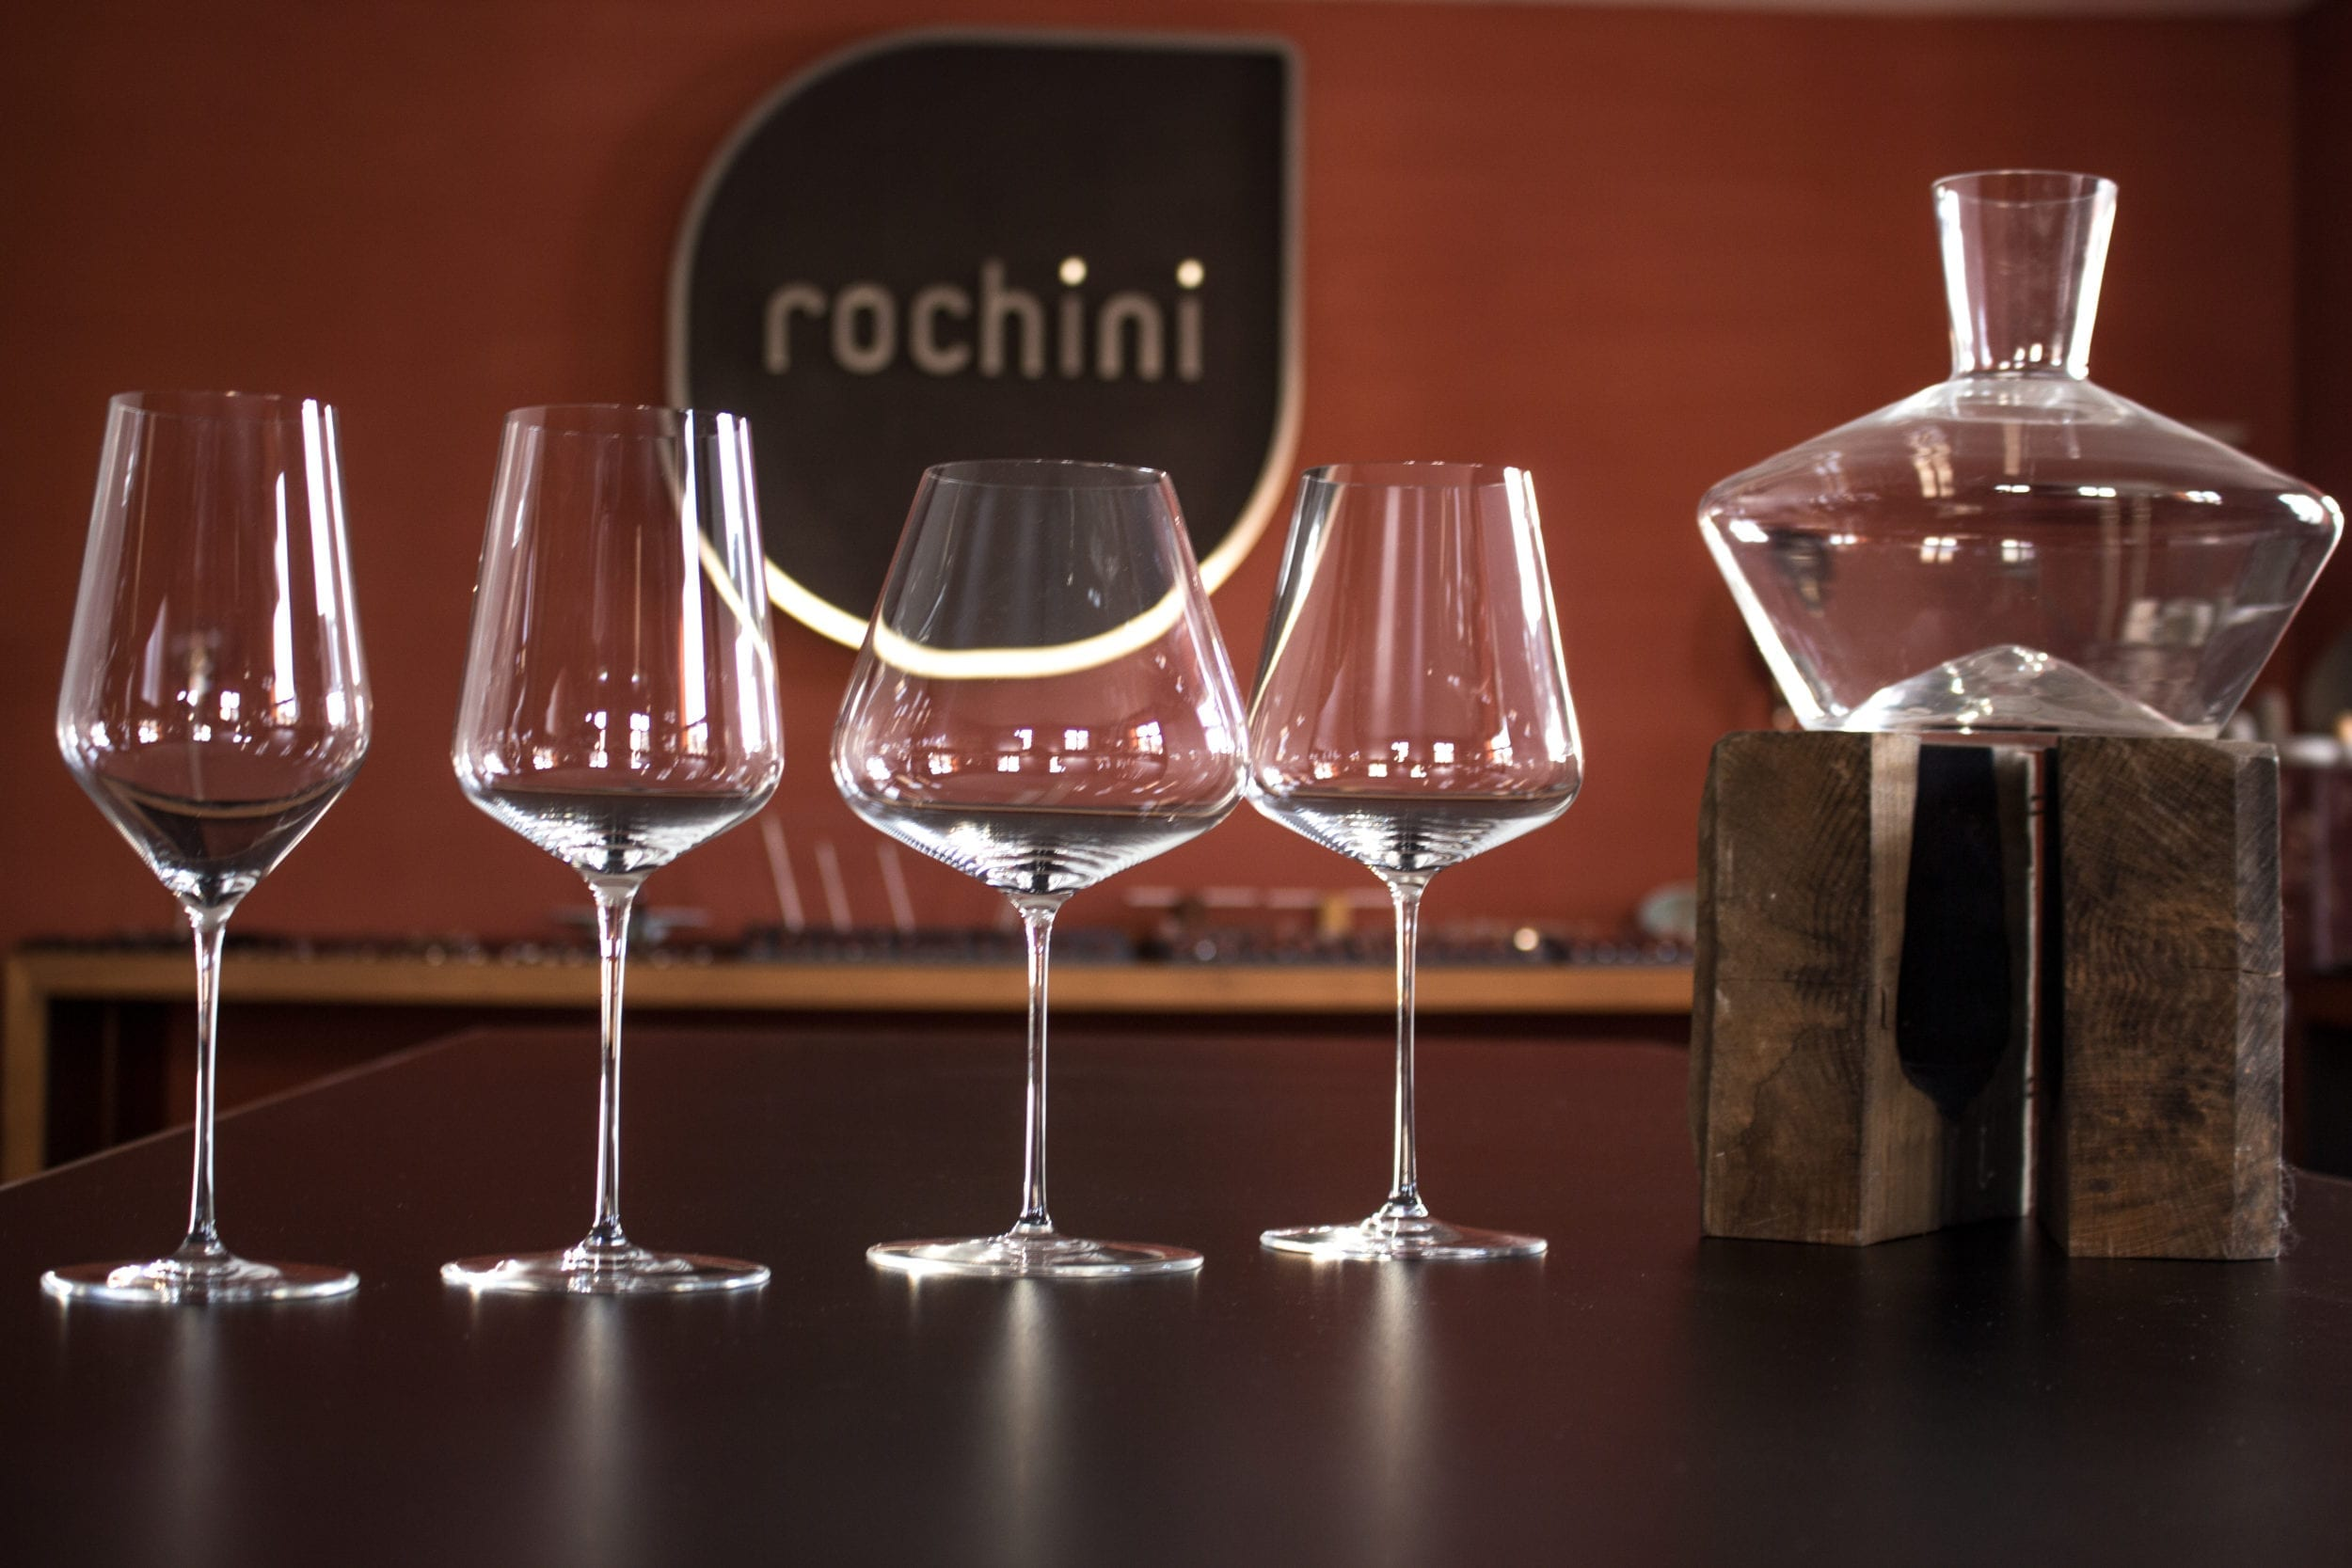 faszination glas rochini I started in 2009 as a 100% cross company in this sector, without any customer...